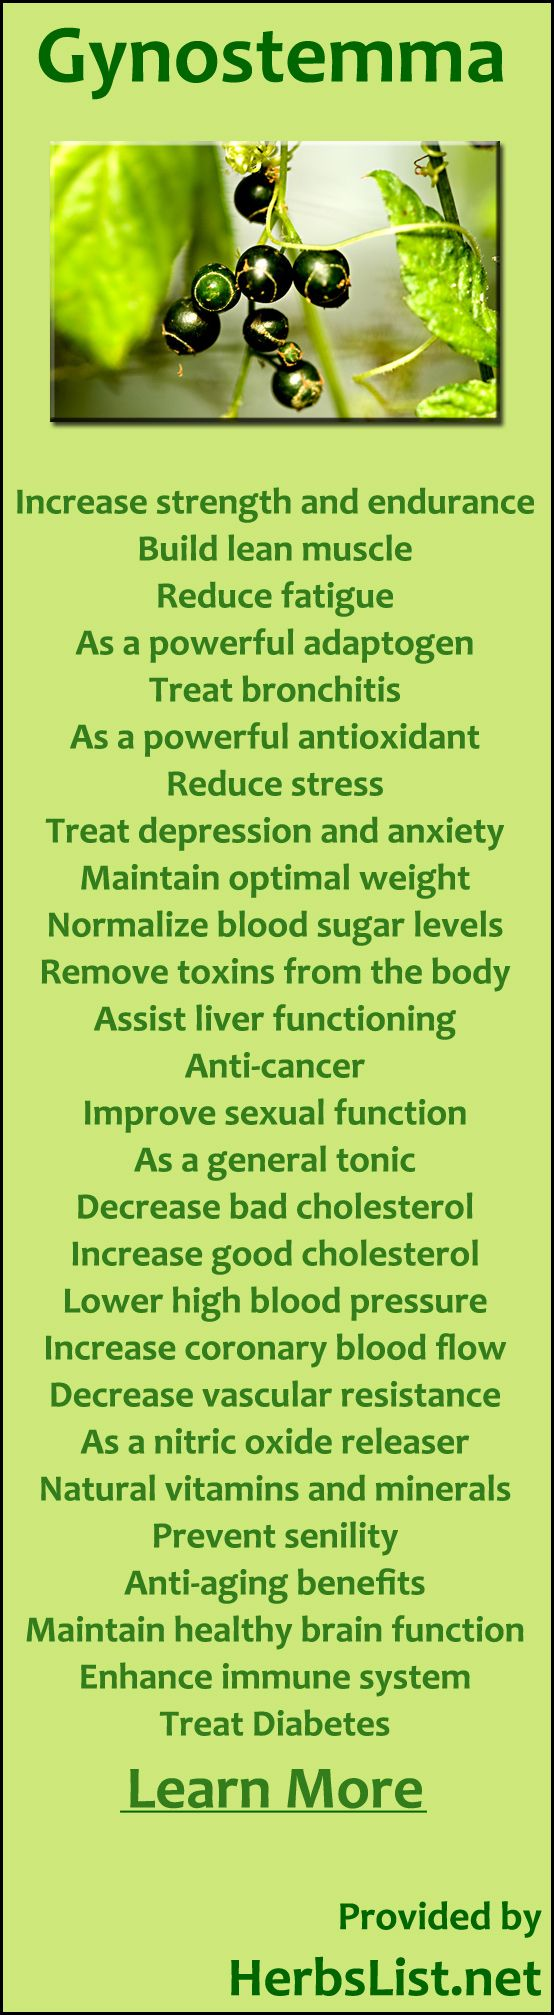 Gynostemma Uses For Health- cholesterol, blood pressure, bronchitis, fatigue, antioxidant, depression, anxiety and more